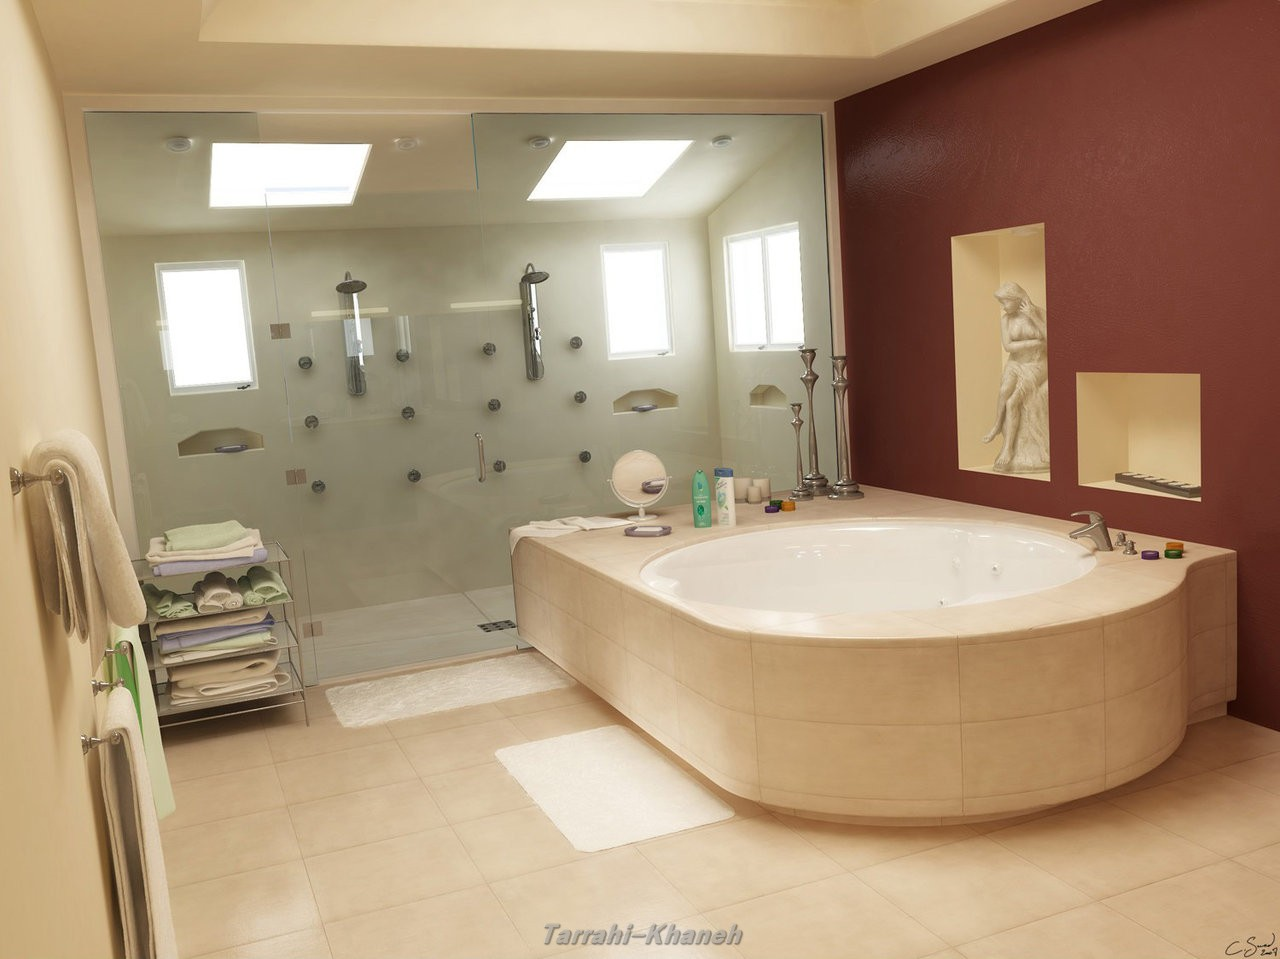 http://rozup.ir/up/tarrahi-khaneh/Pictures/Bathroom-Designs/Bathroom-Design-Ideas-Set-3/61.jpg